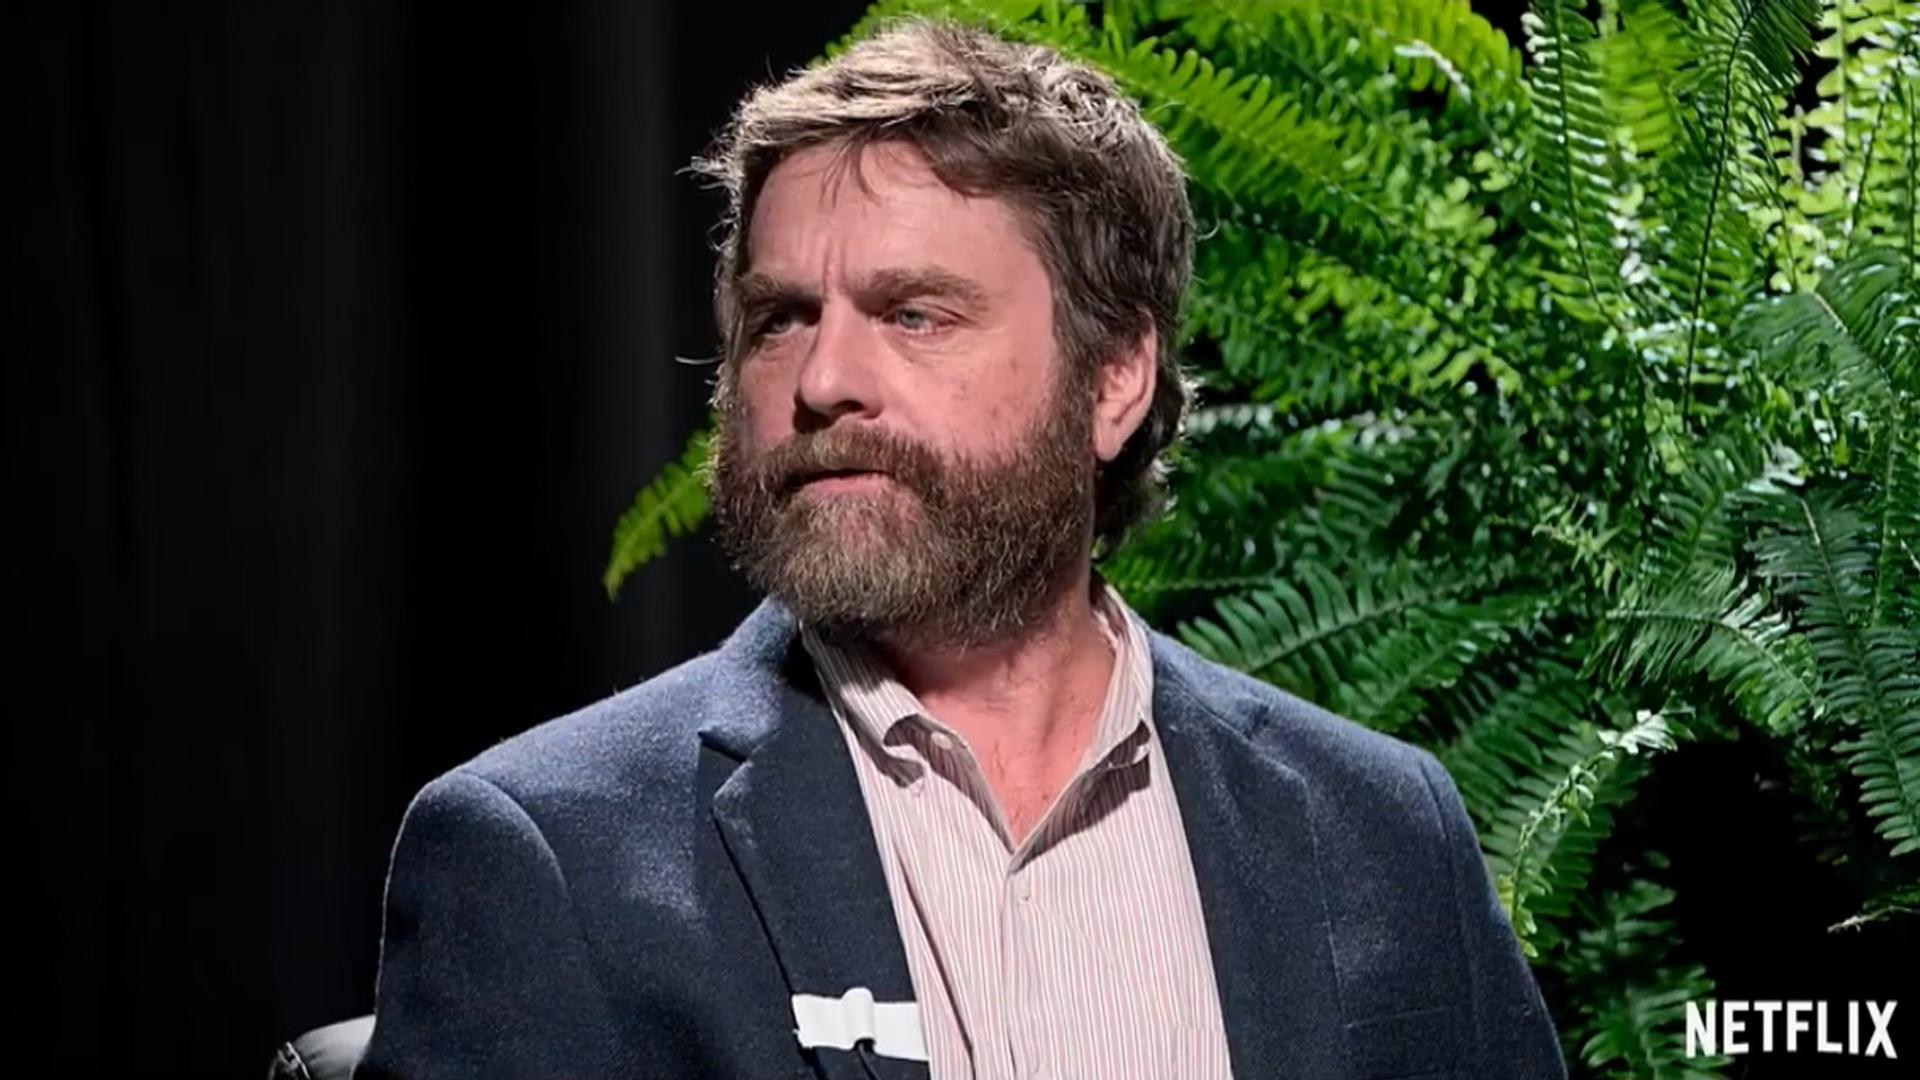 Zach Galifinakis Apologizes For Calling Bradley Cooper A 'Hot Idiot'